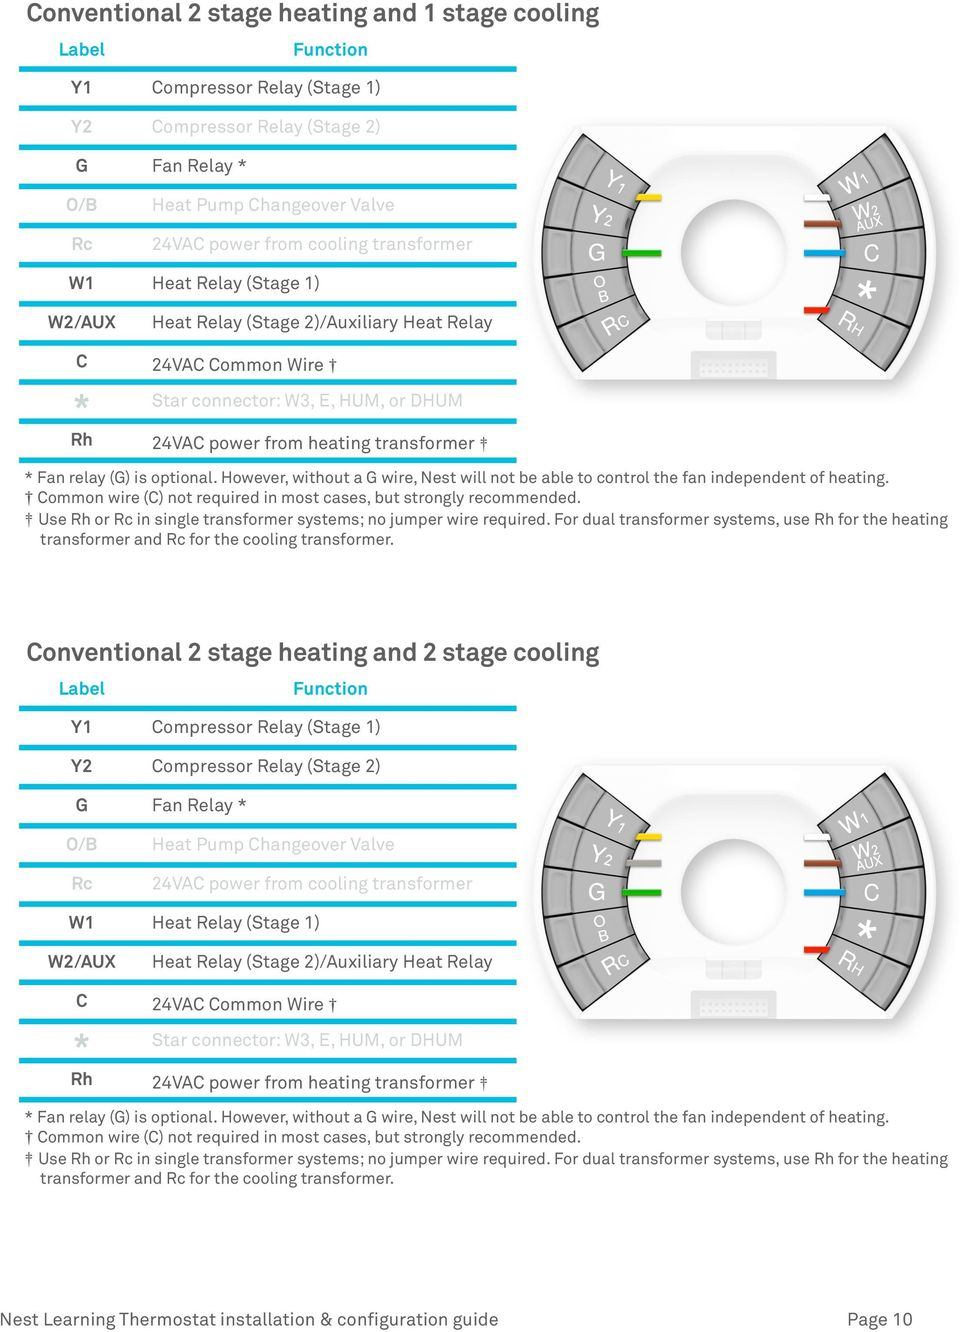 Nest Wiring Diagram For Heat Pump System | Manual E-Books - Nest Thermostat 2Nd Generation Heat Pump Wiring Diagram